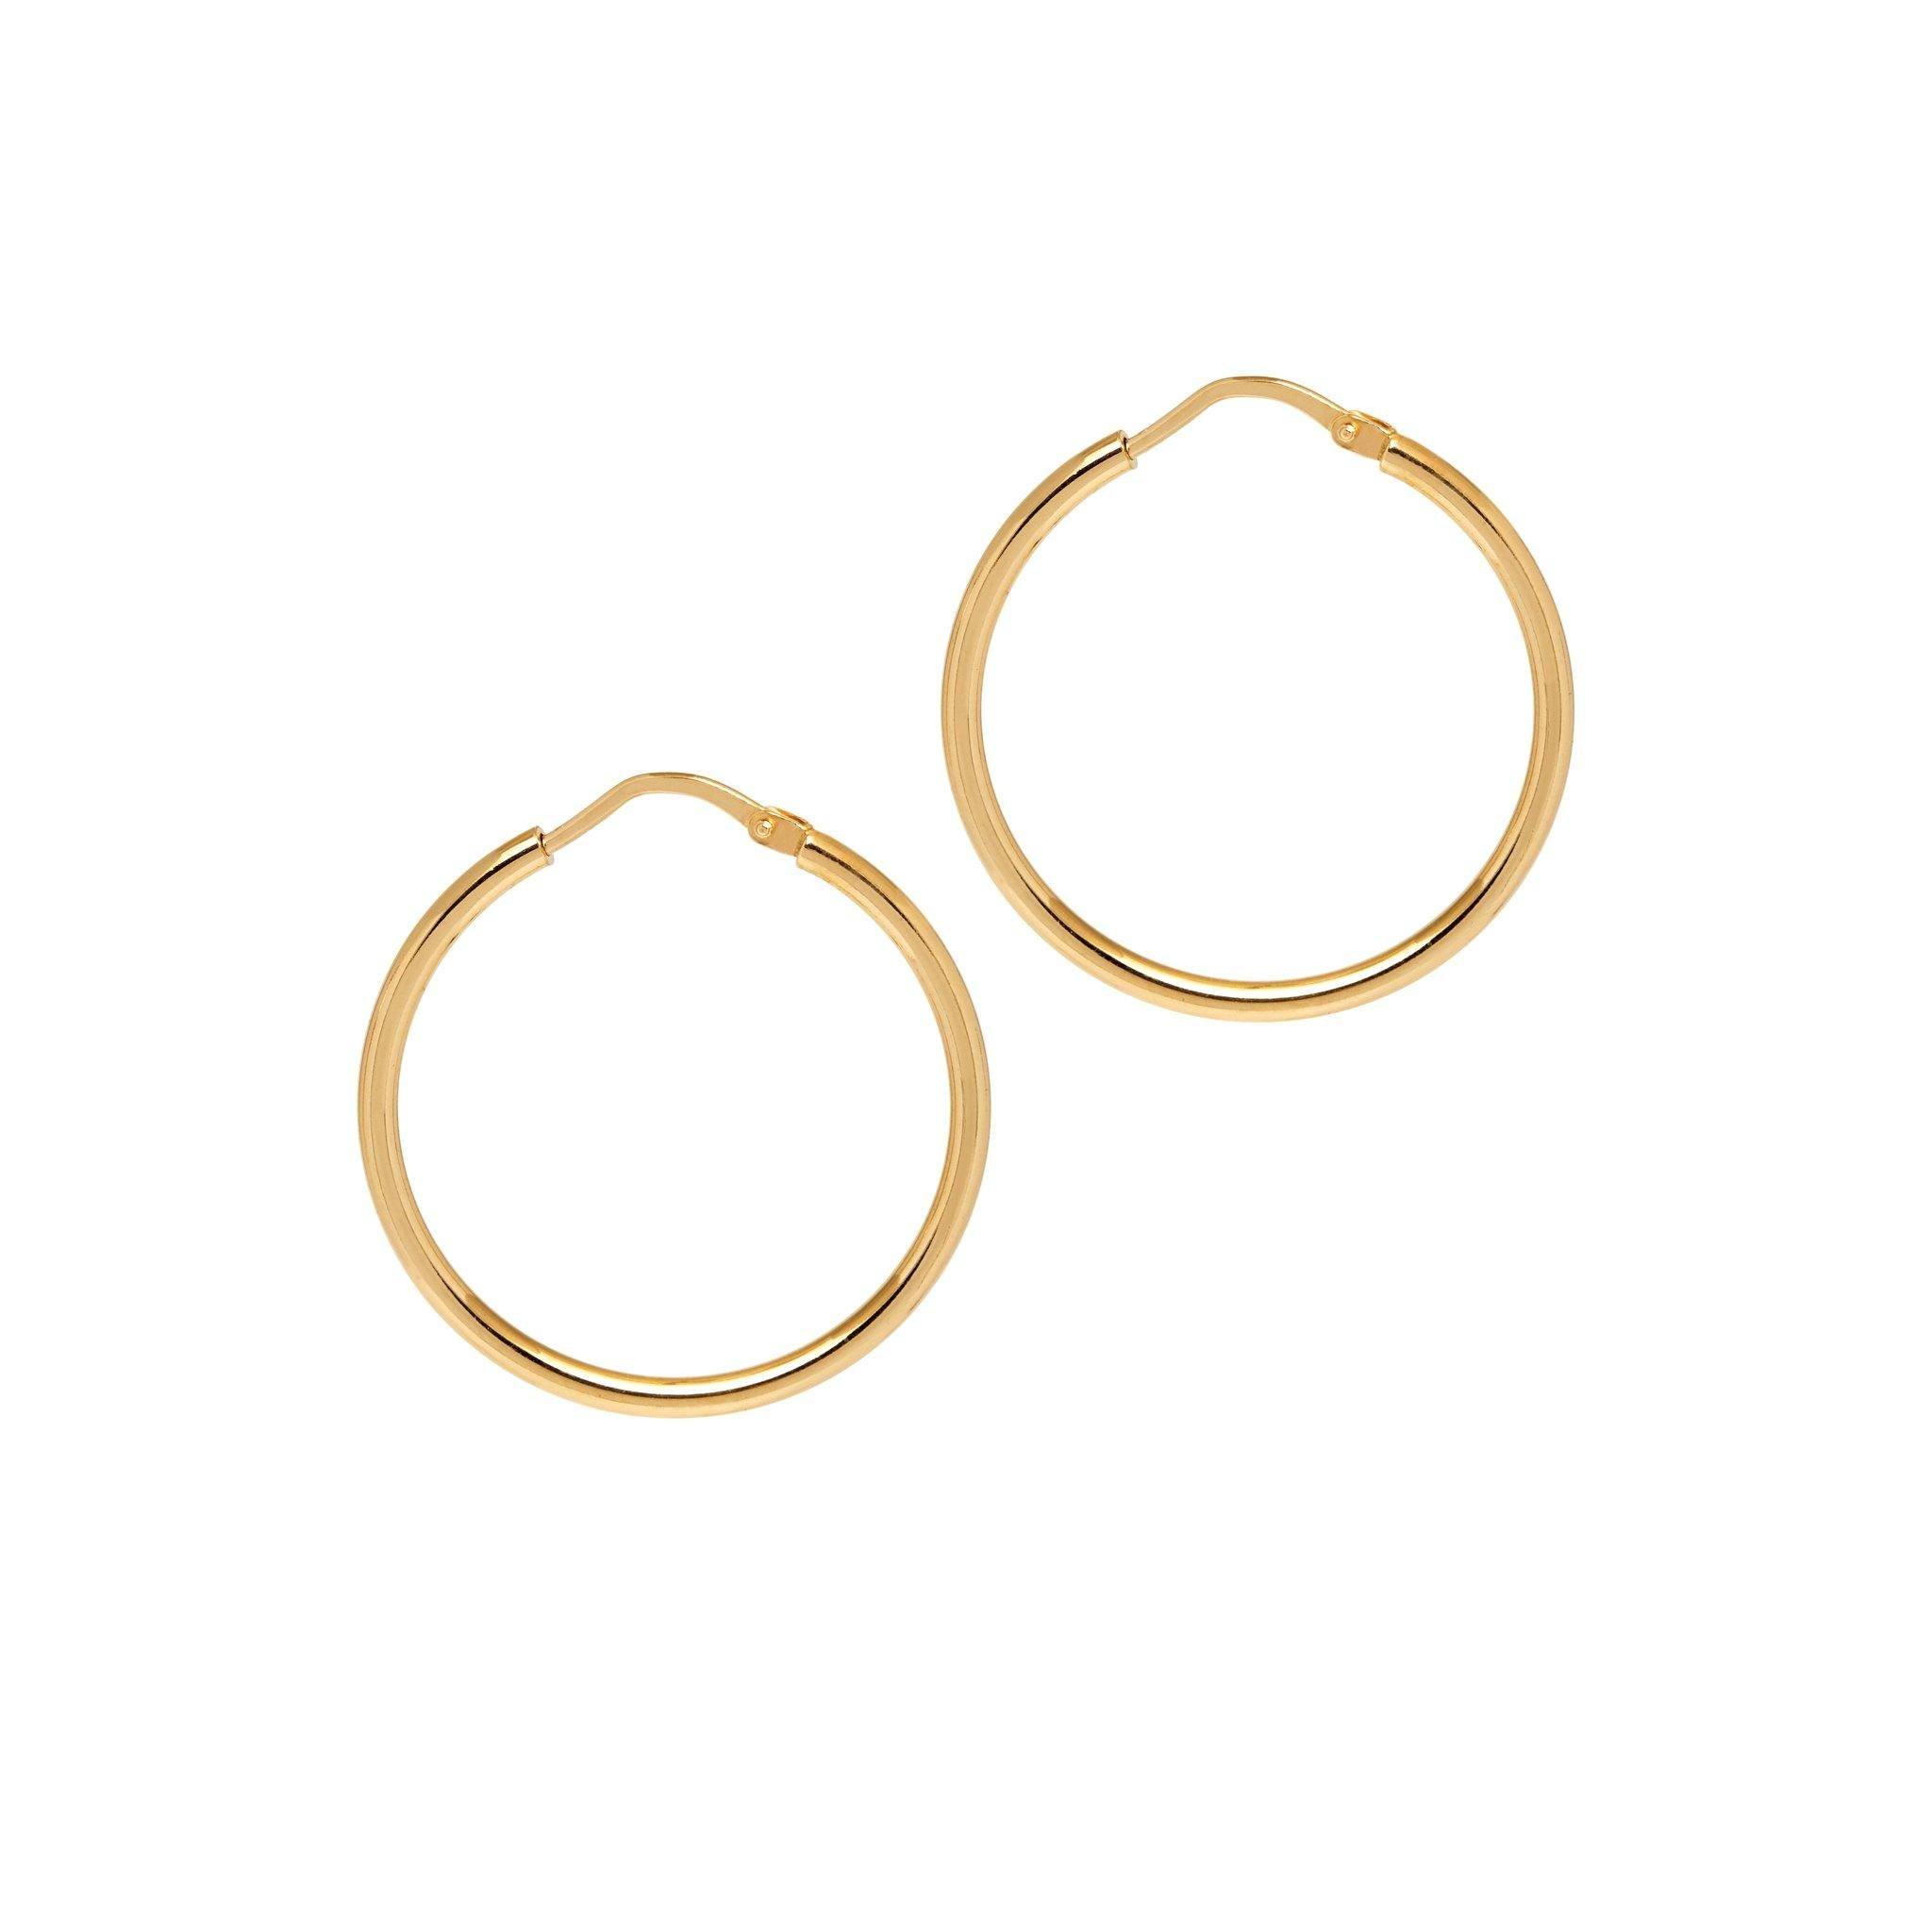 La CHICA LATINA Small - The Hoop Station 925 Sterling Silver Hoop Earrings Gold Huggies